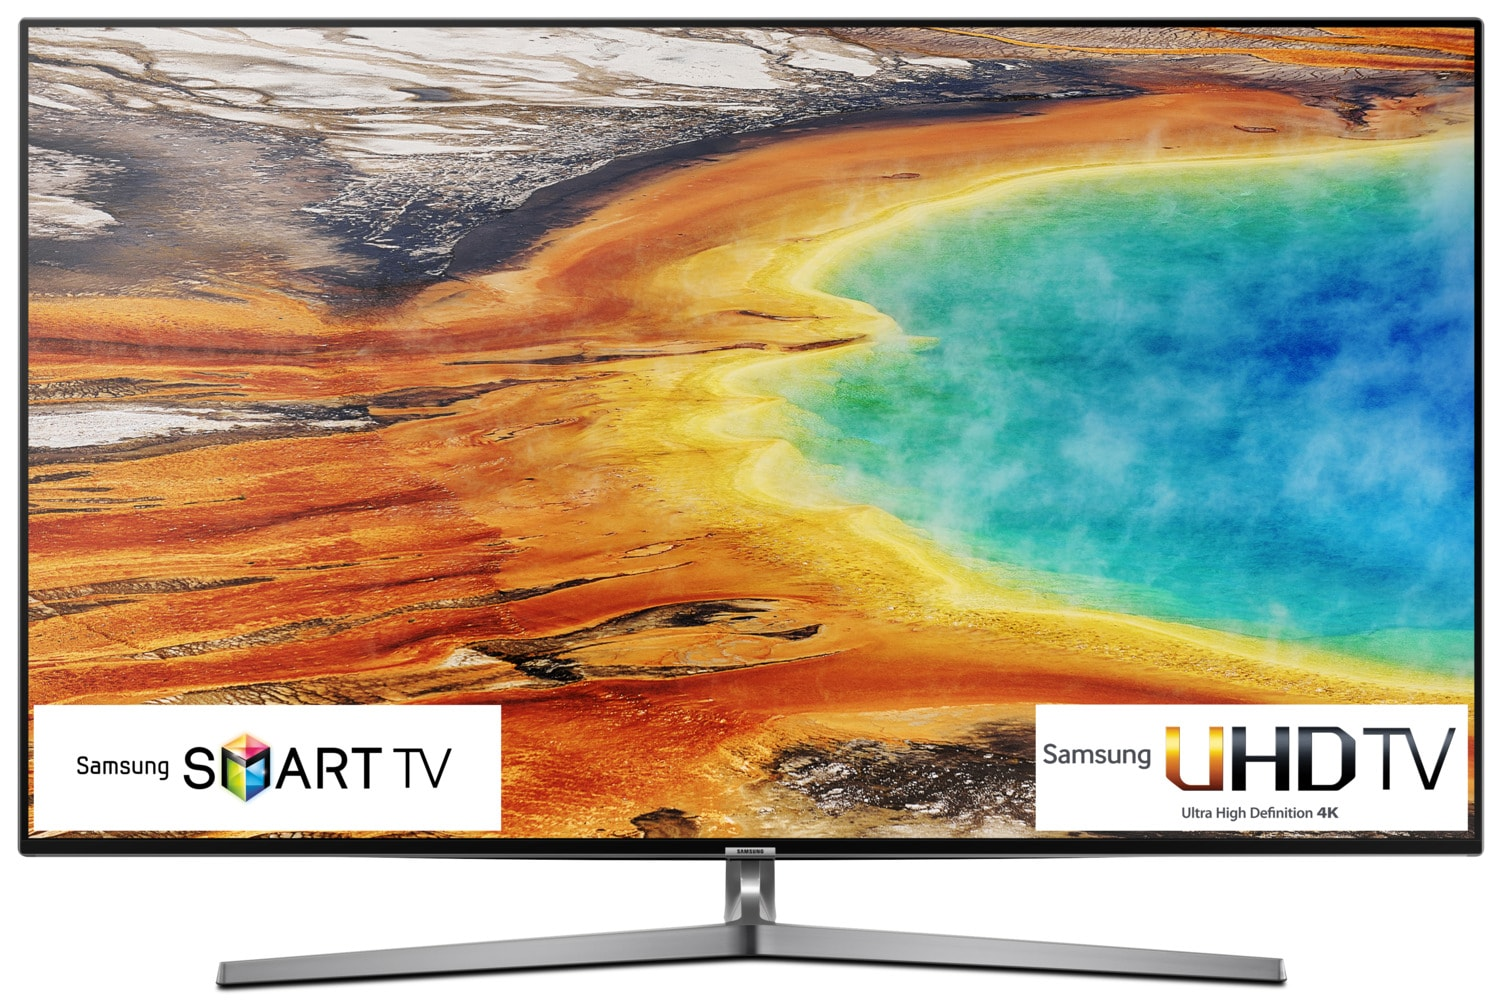 "Samsung 55"" 4K UHD Smart LED TV - UN55MU9000FXZC"